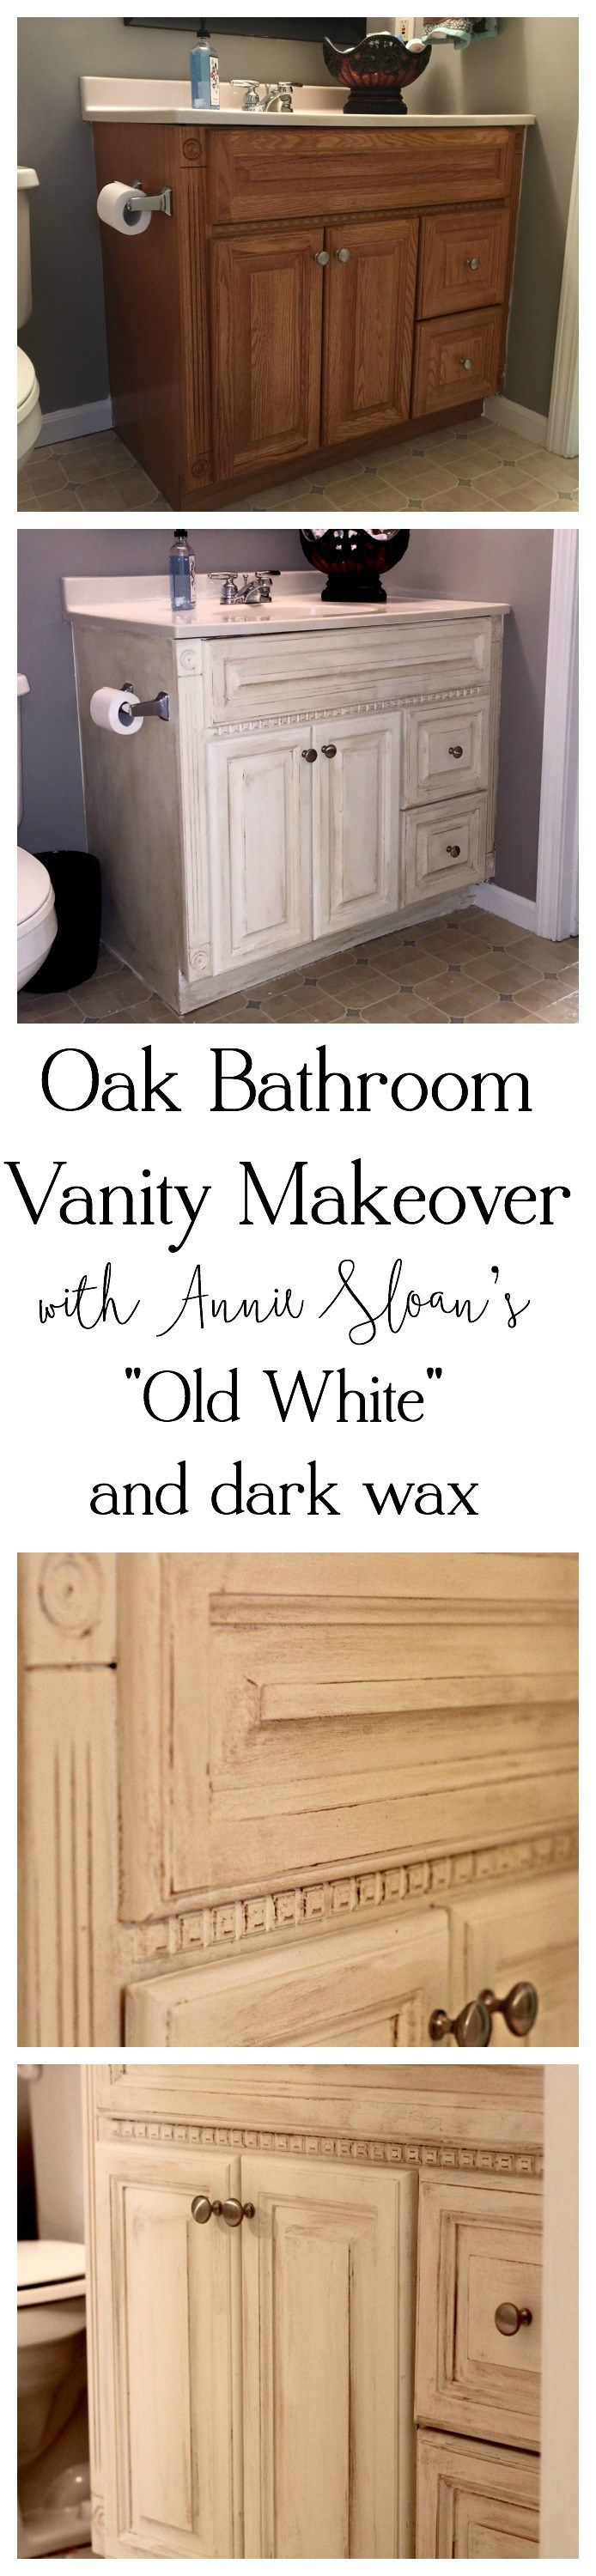 Bathroom vanity makeover with annie sloan chalk paint - Oak Bathroom Vanity Makeover With Annie Sloan S Old White And Dark Wax Another Oak Vanity